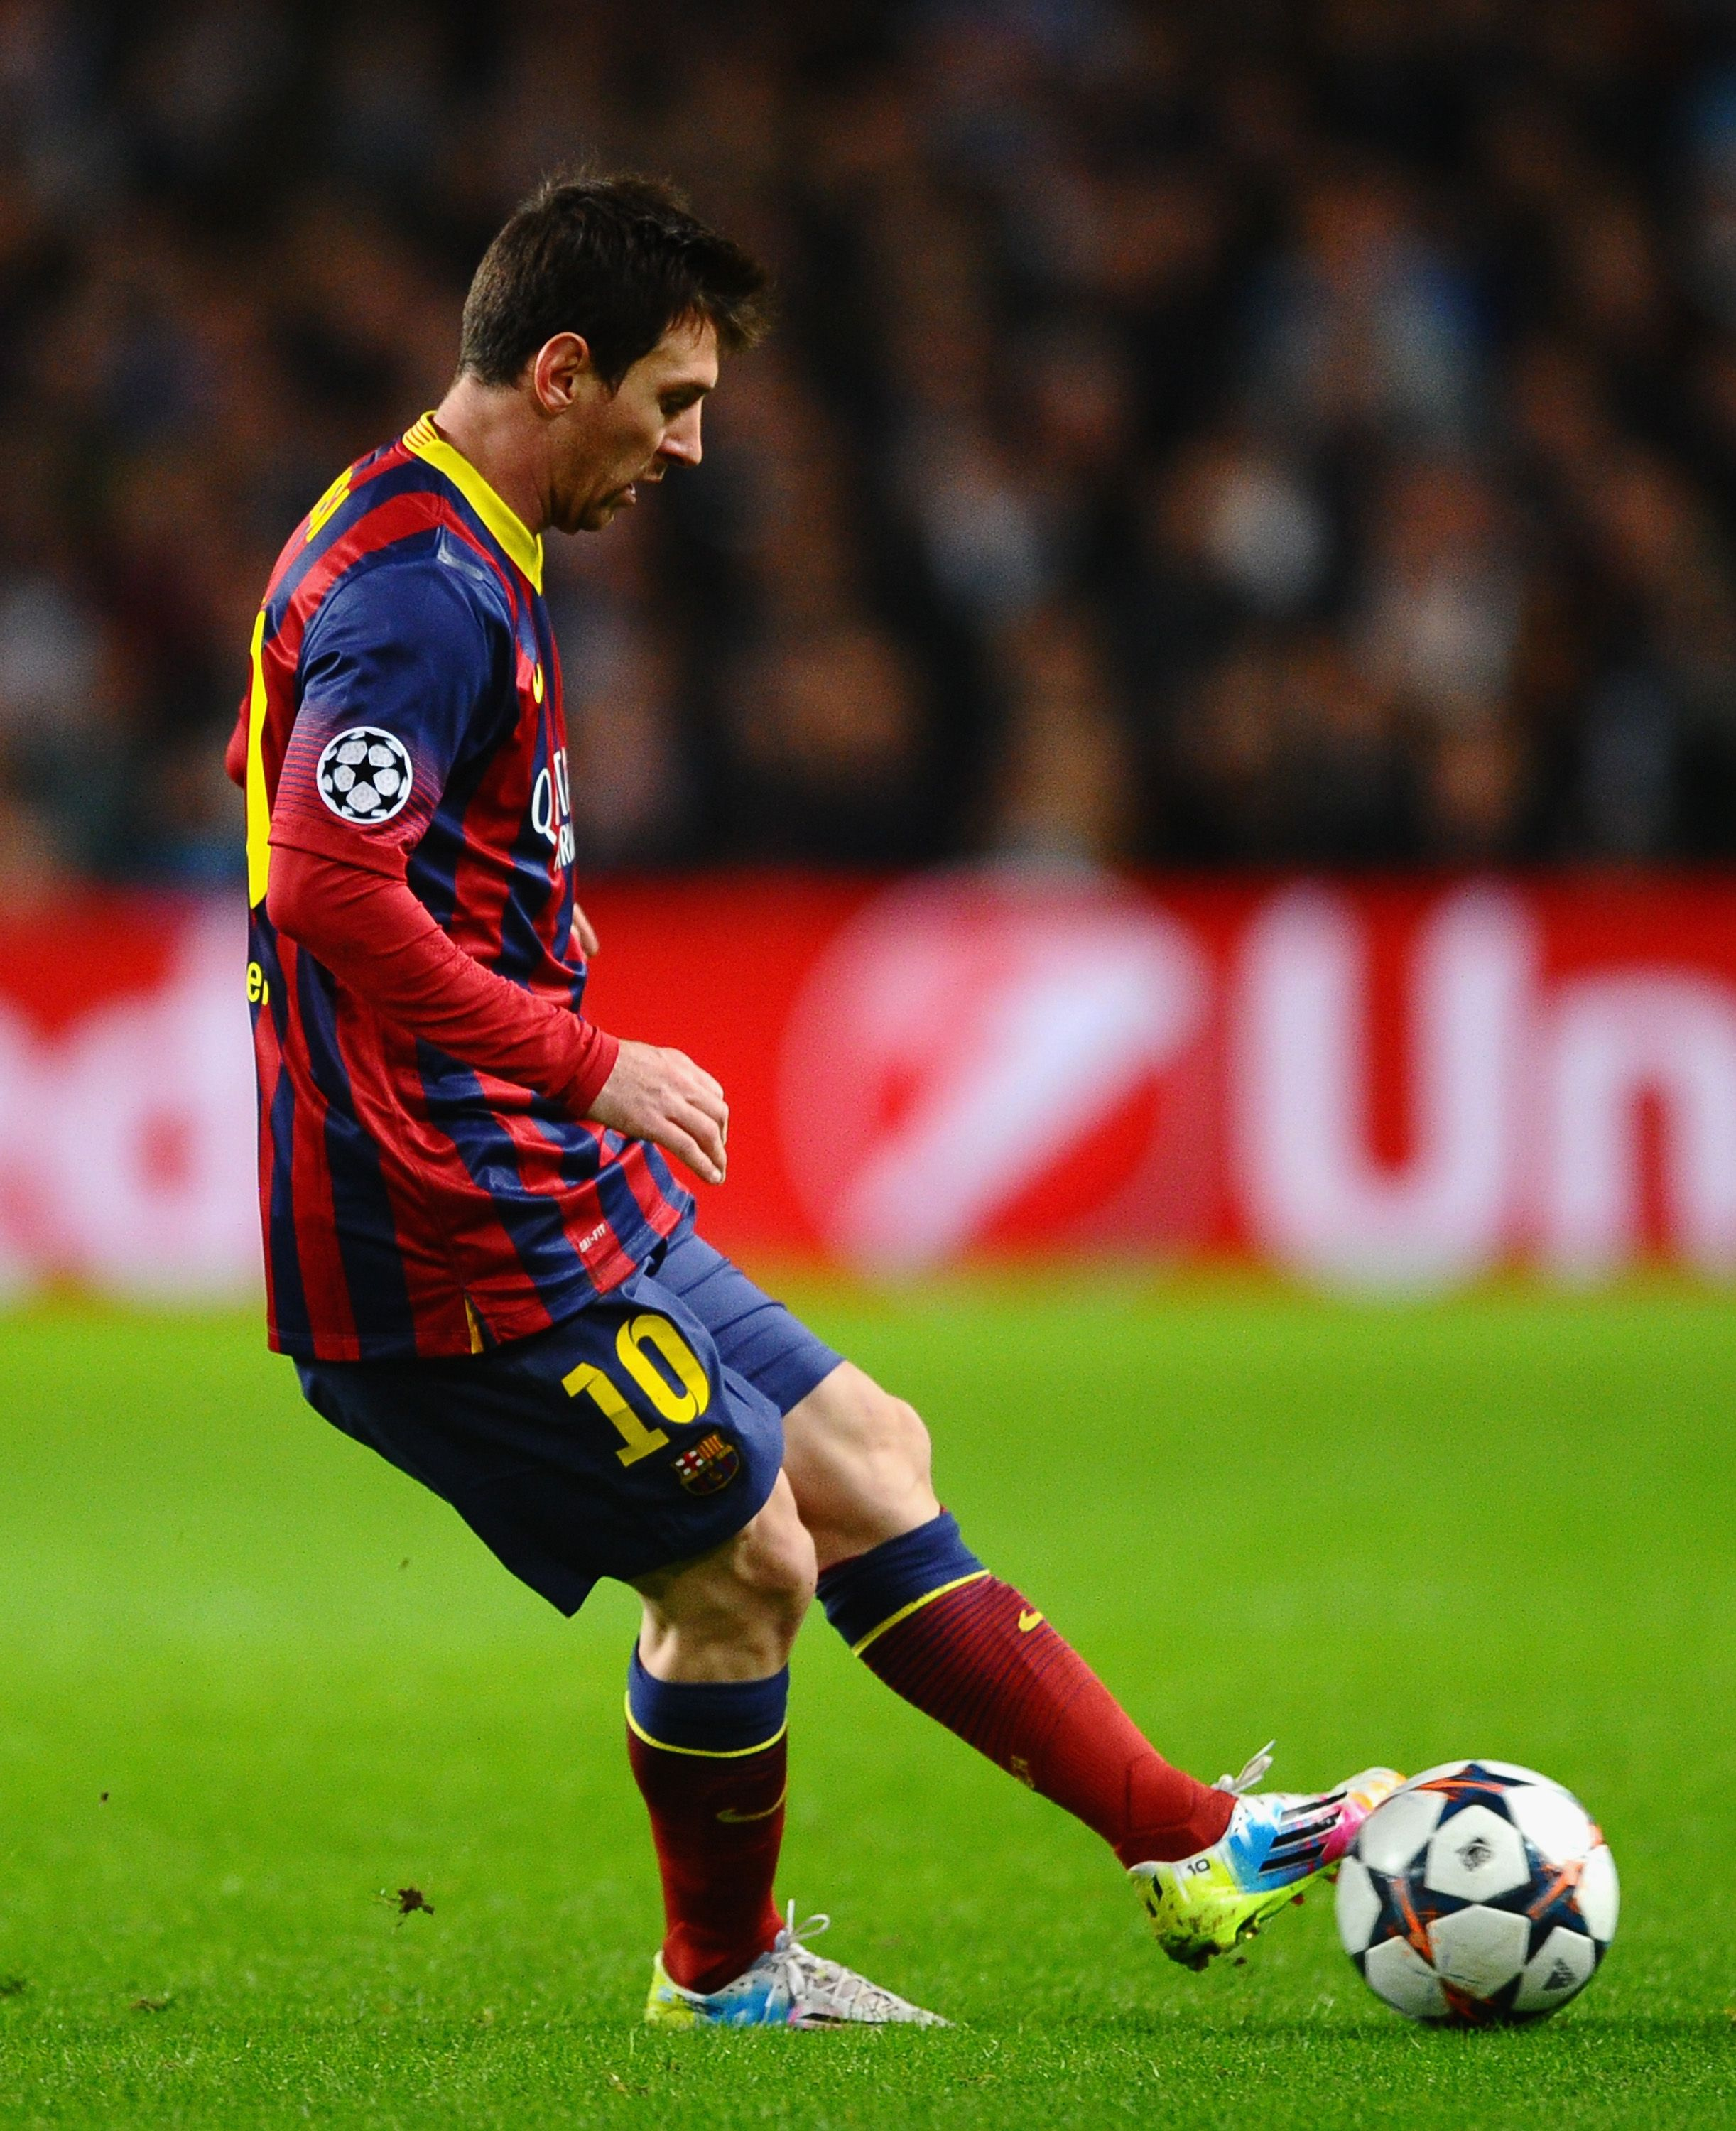 d2127027334 Messi scored in his new adidas F50 adizero boots in the 1st leg of  Barcelona s UCL match vs Manchester City.